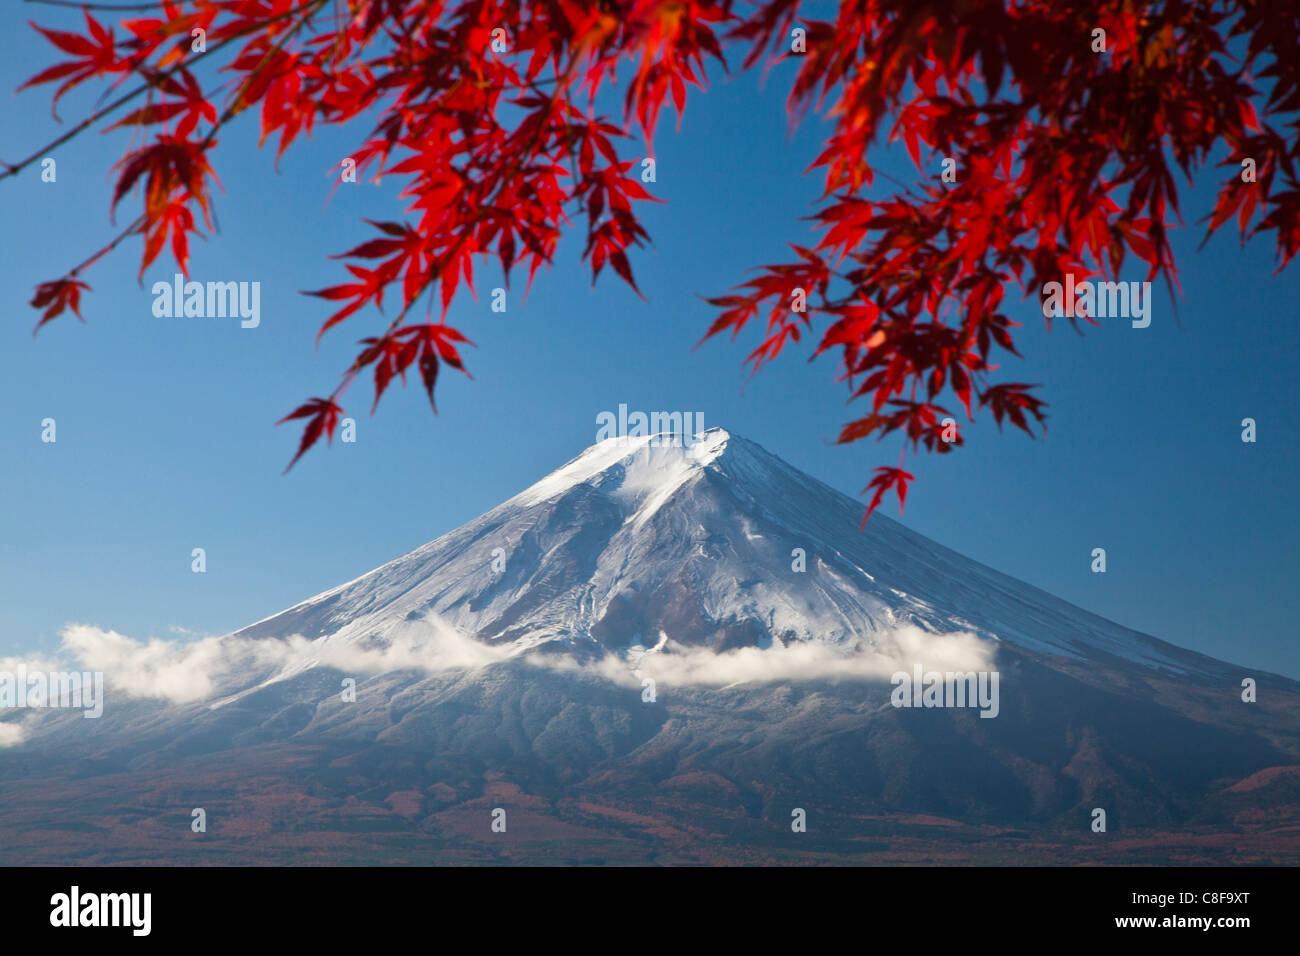 Japan, November, Asia, mountain Fuji, Fuji, maple, red, Japanese, maple, Momiji, snow, scenery - Stock Image